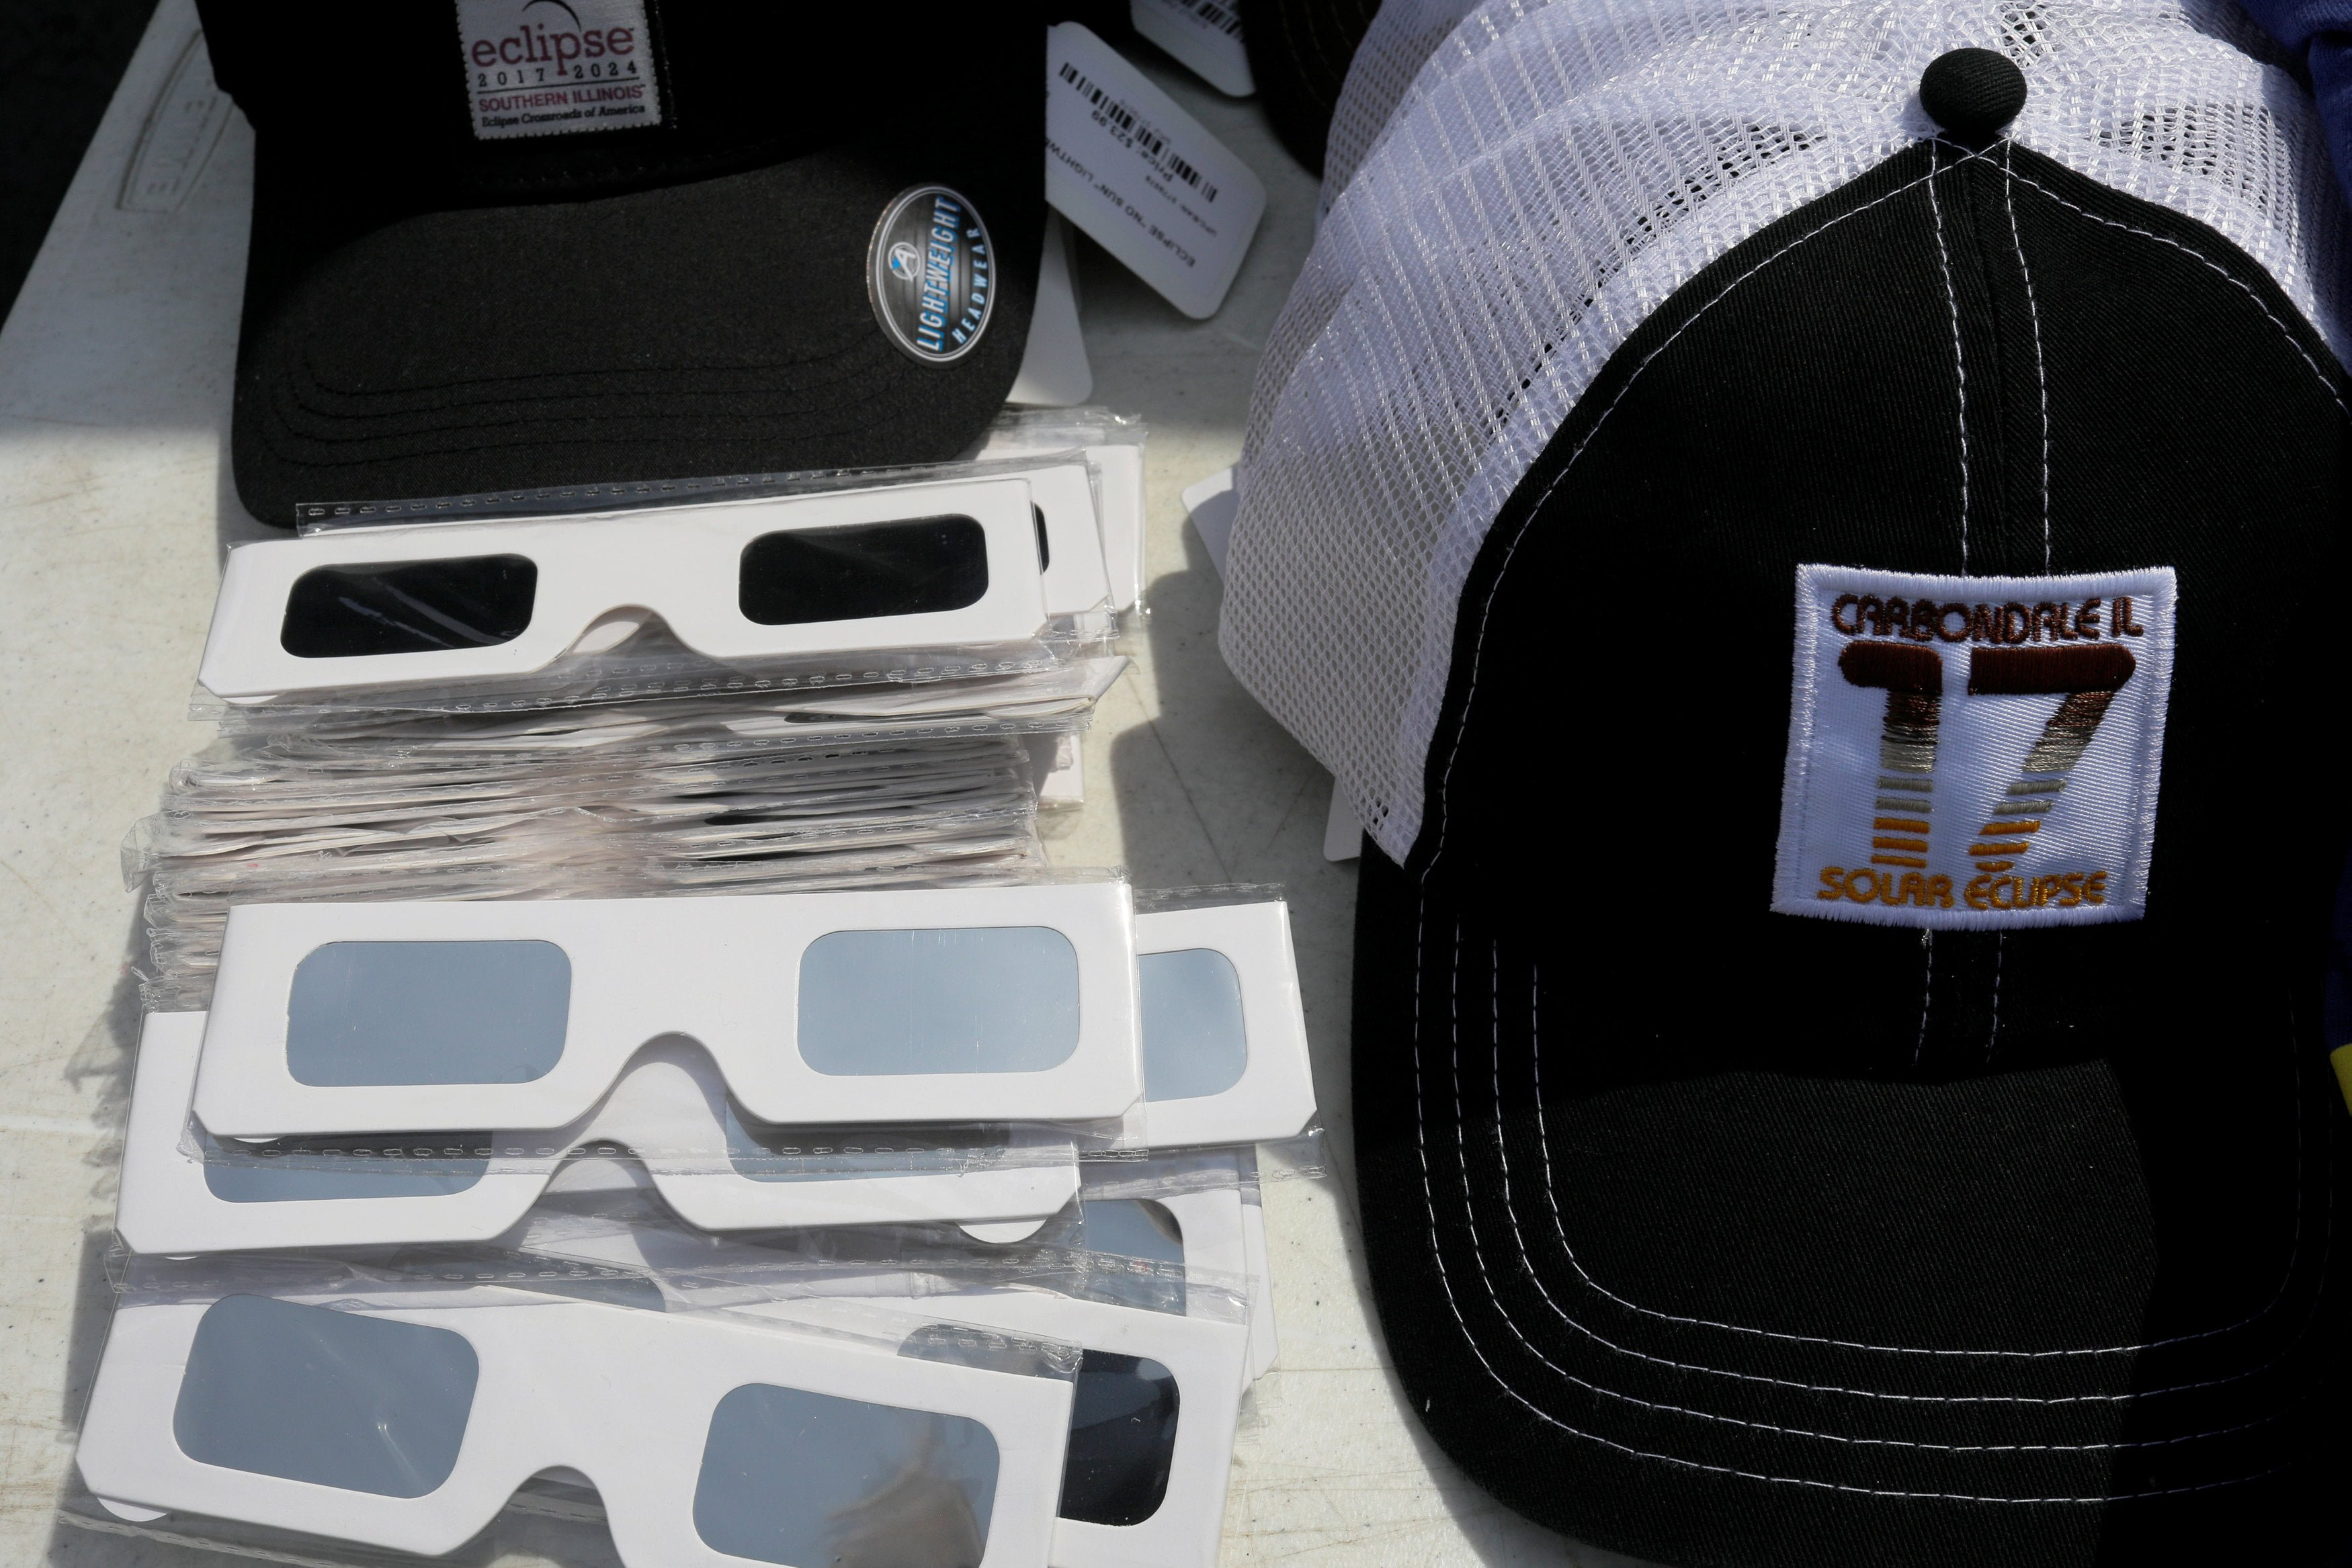 Solar viewing glasses and baseball caps are for sale in Carbondale